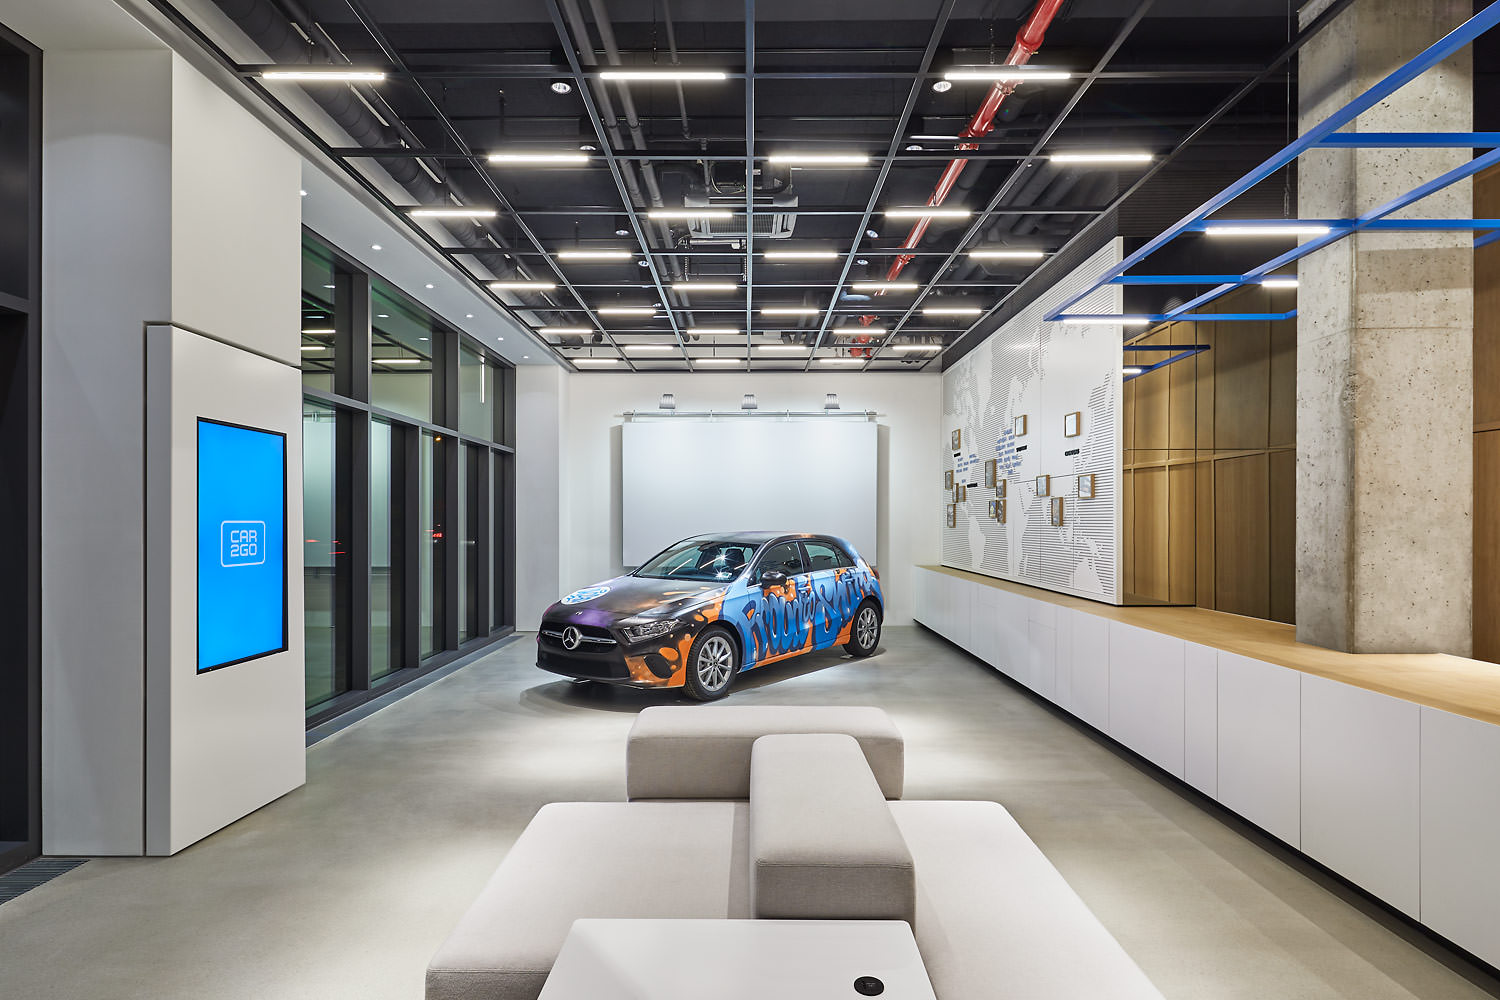 Architekturfotograf Berlin, Car2Go Showroom, Micha Klein & Sherief Sabet, Berlin